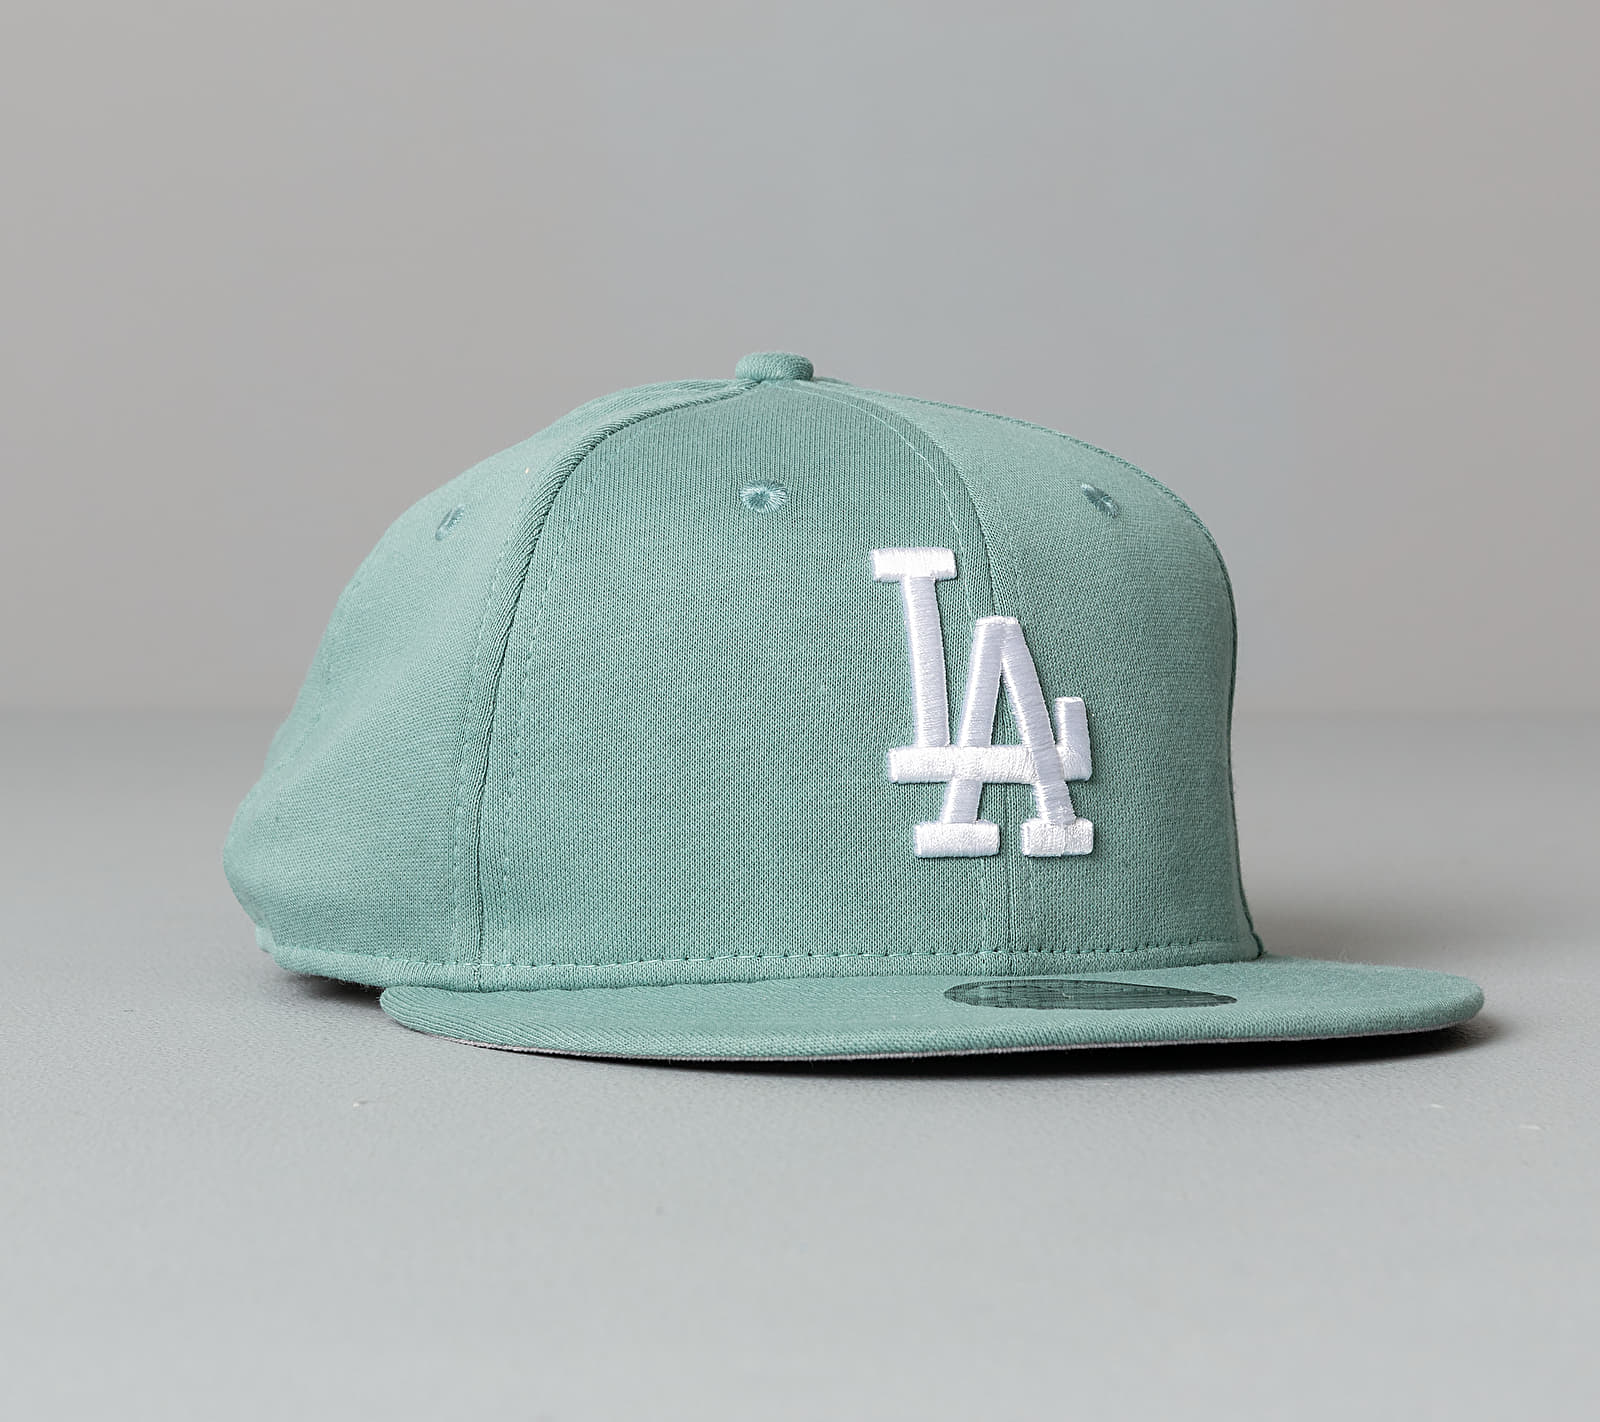 New Era 9Fifty MLB Jersey Pack Los Angeles Dodgers Cap Green S/M